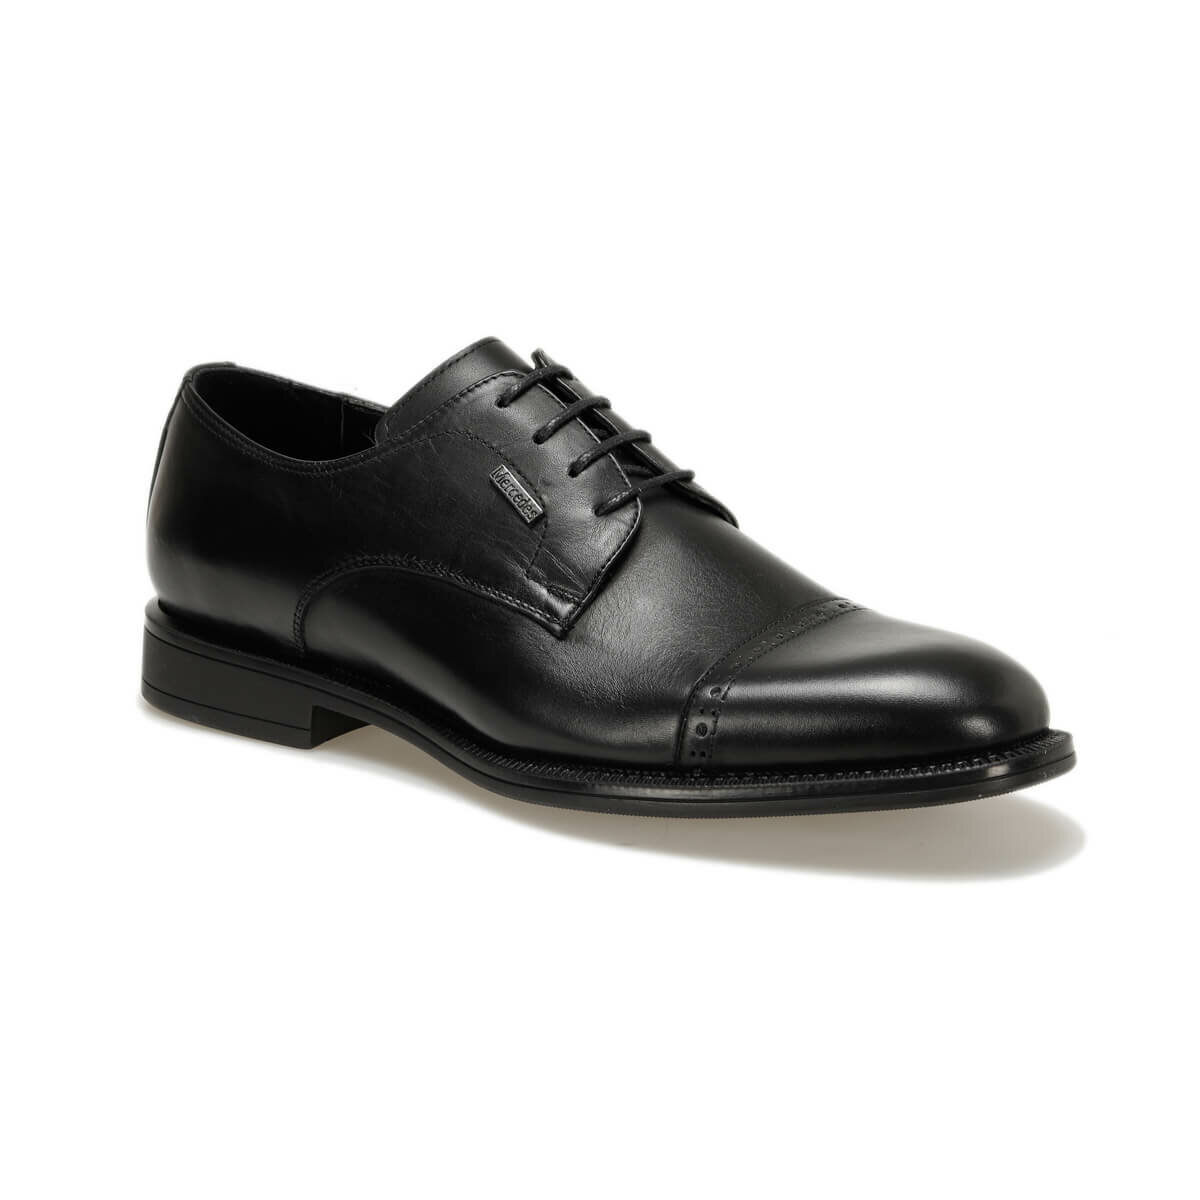 FLO ROME 9PR Black Men 'S Classic Shoes MERCEDES